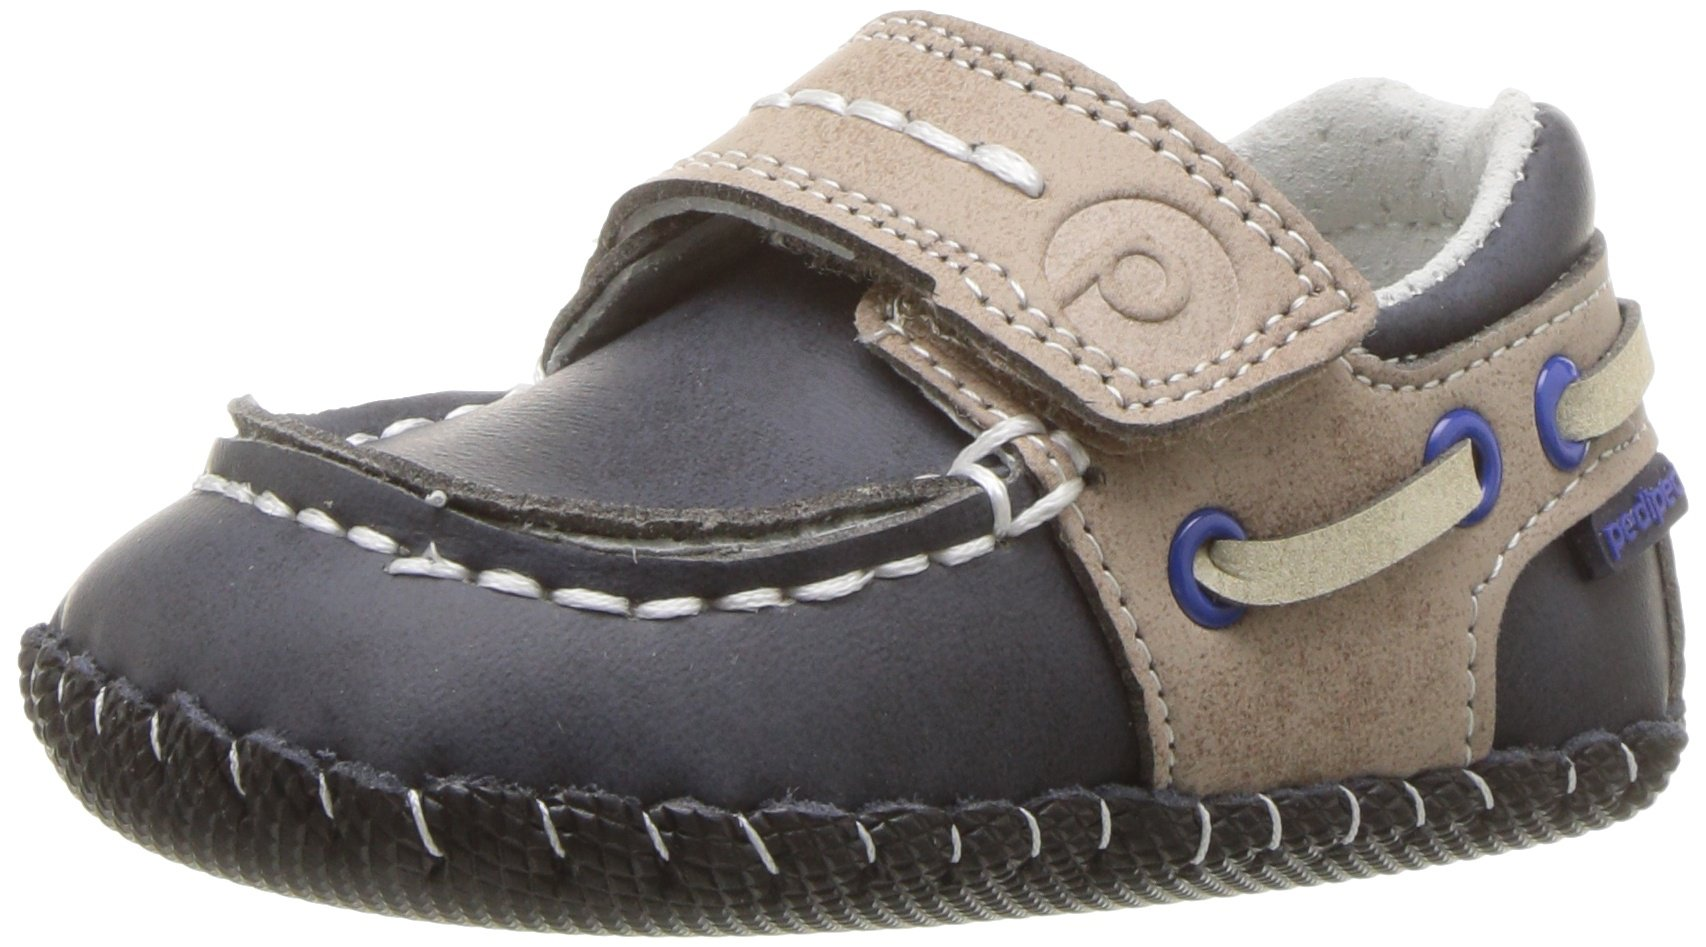 pediped Boys' Norm Crib Shoe, Navy, 6-12 Months Regular EU Infant (6-12 Months US) by pediped